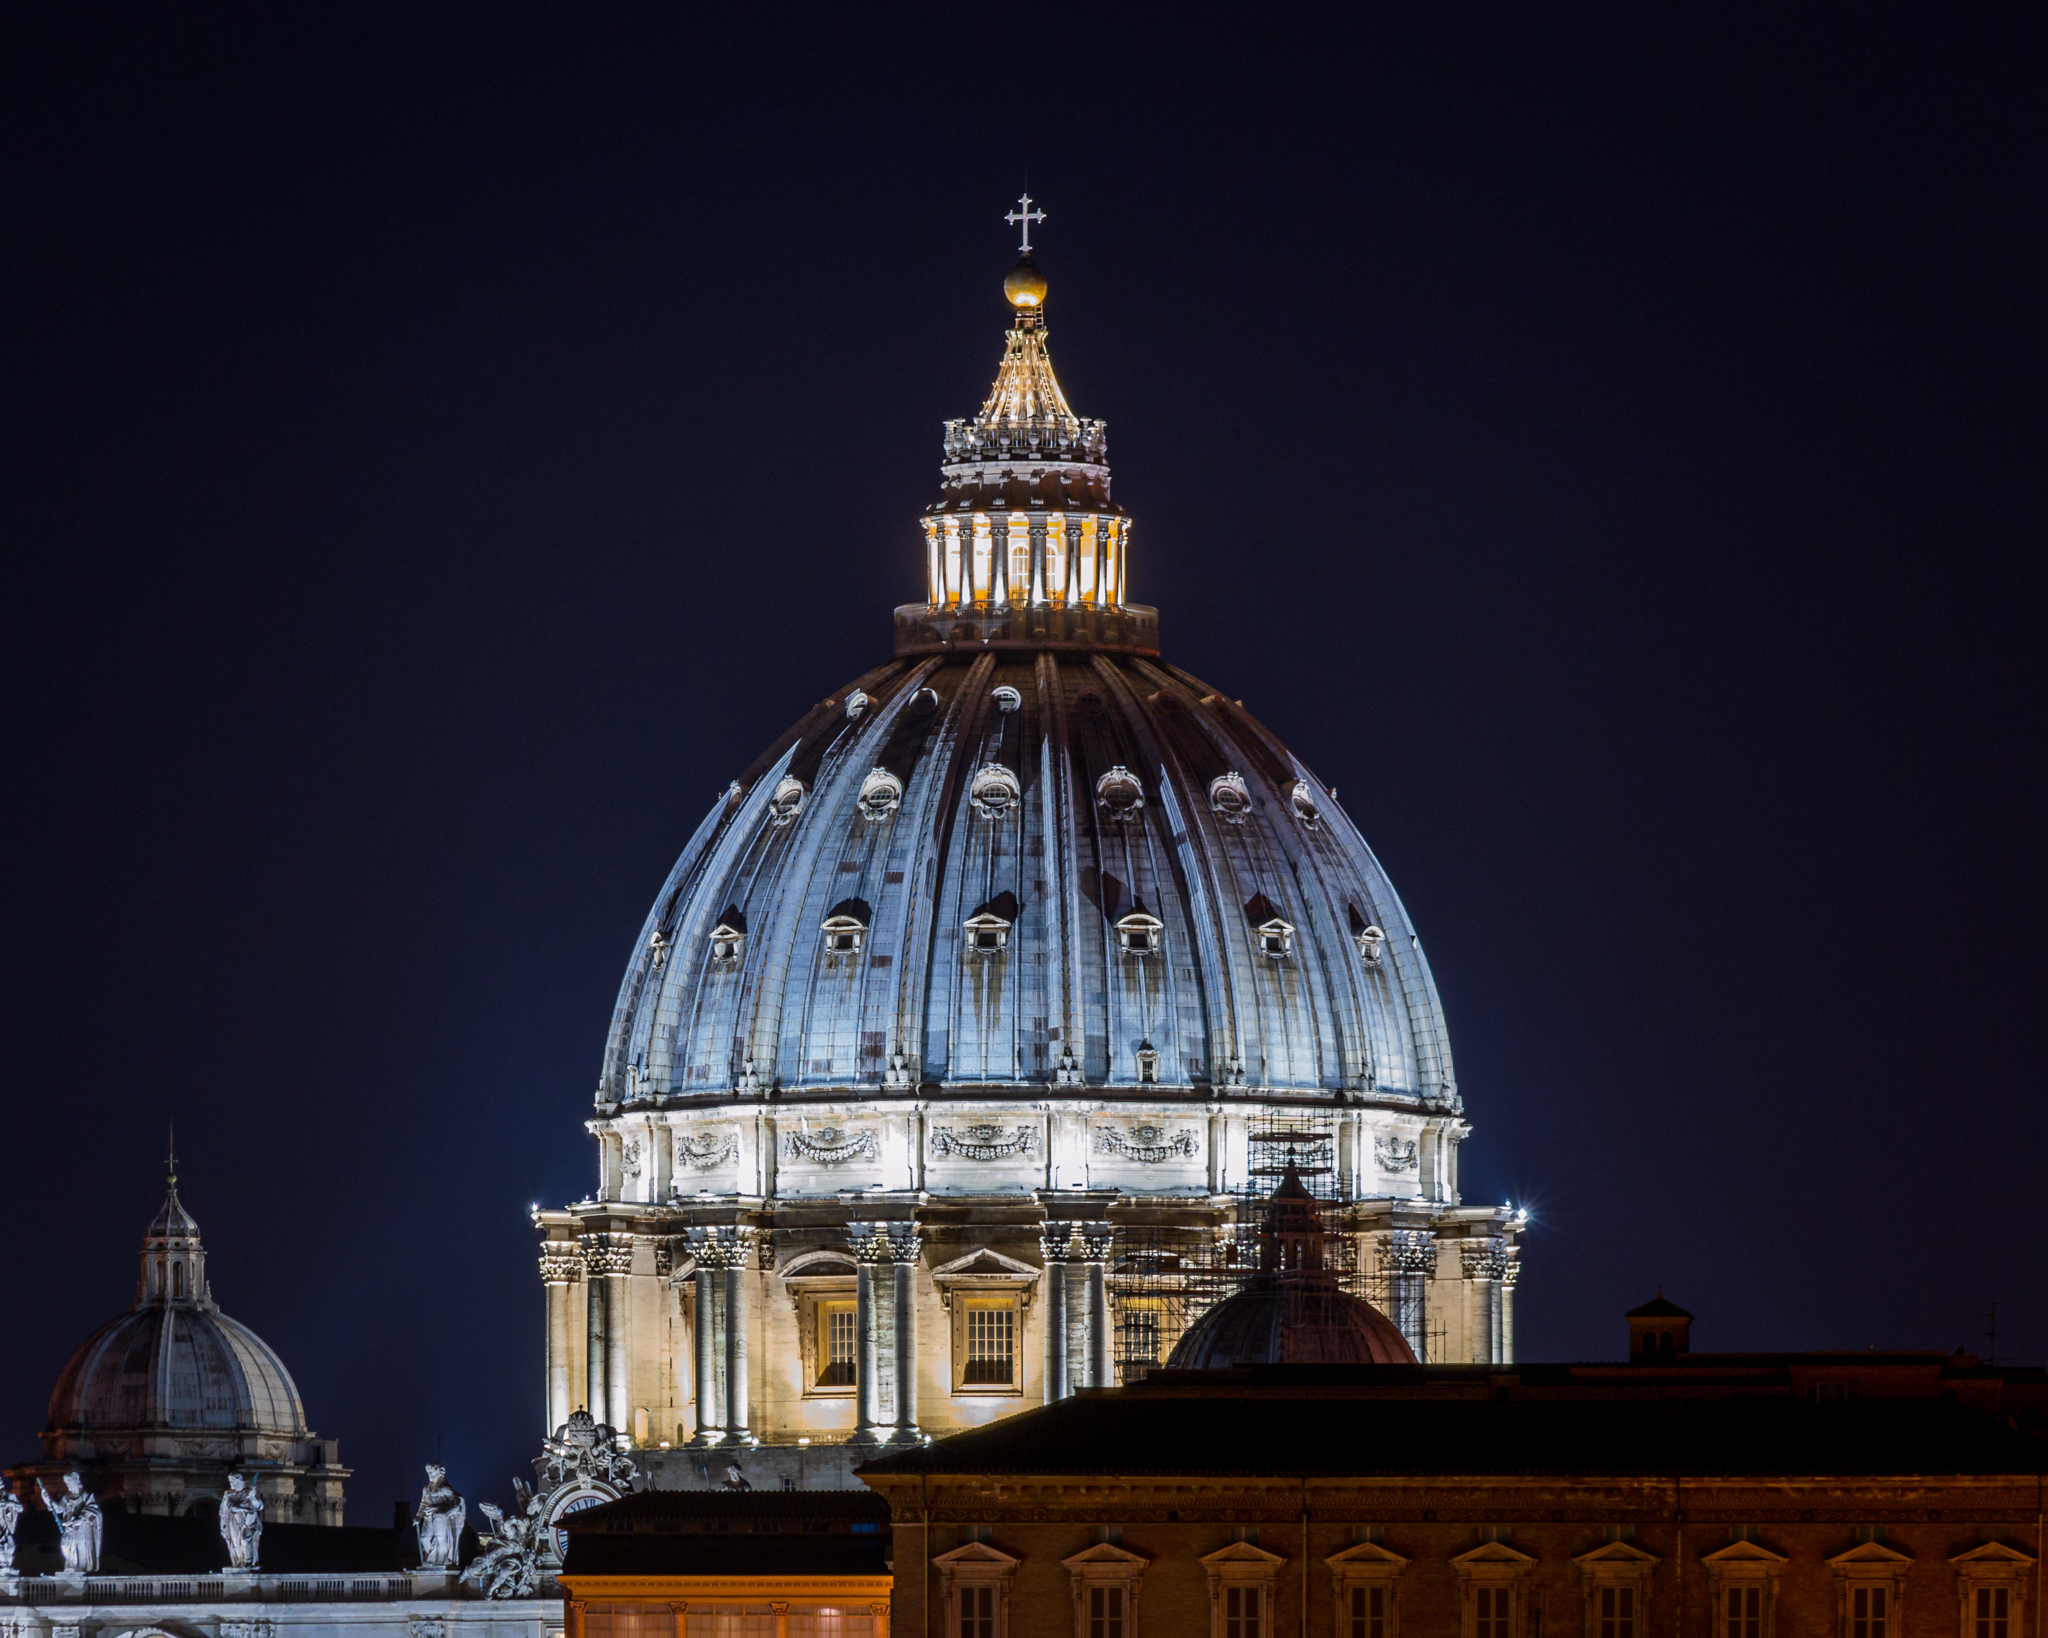 Vatican Dome, Italy